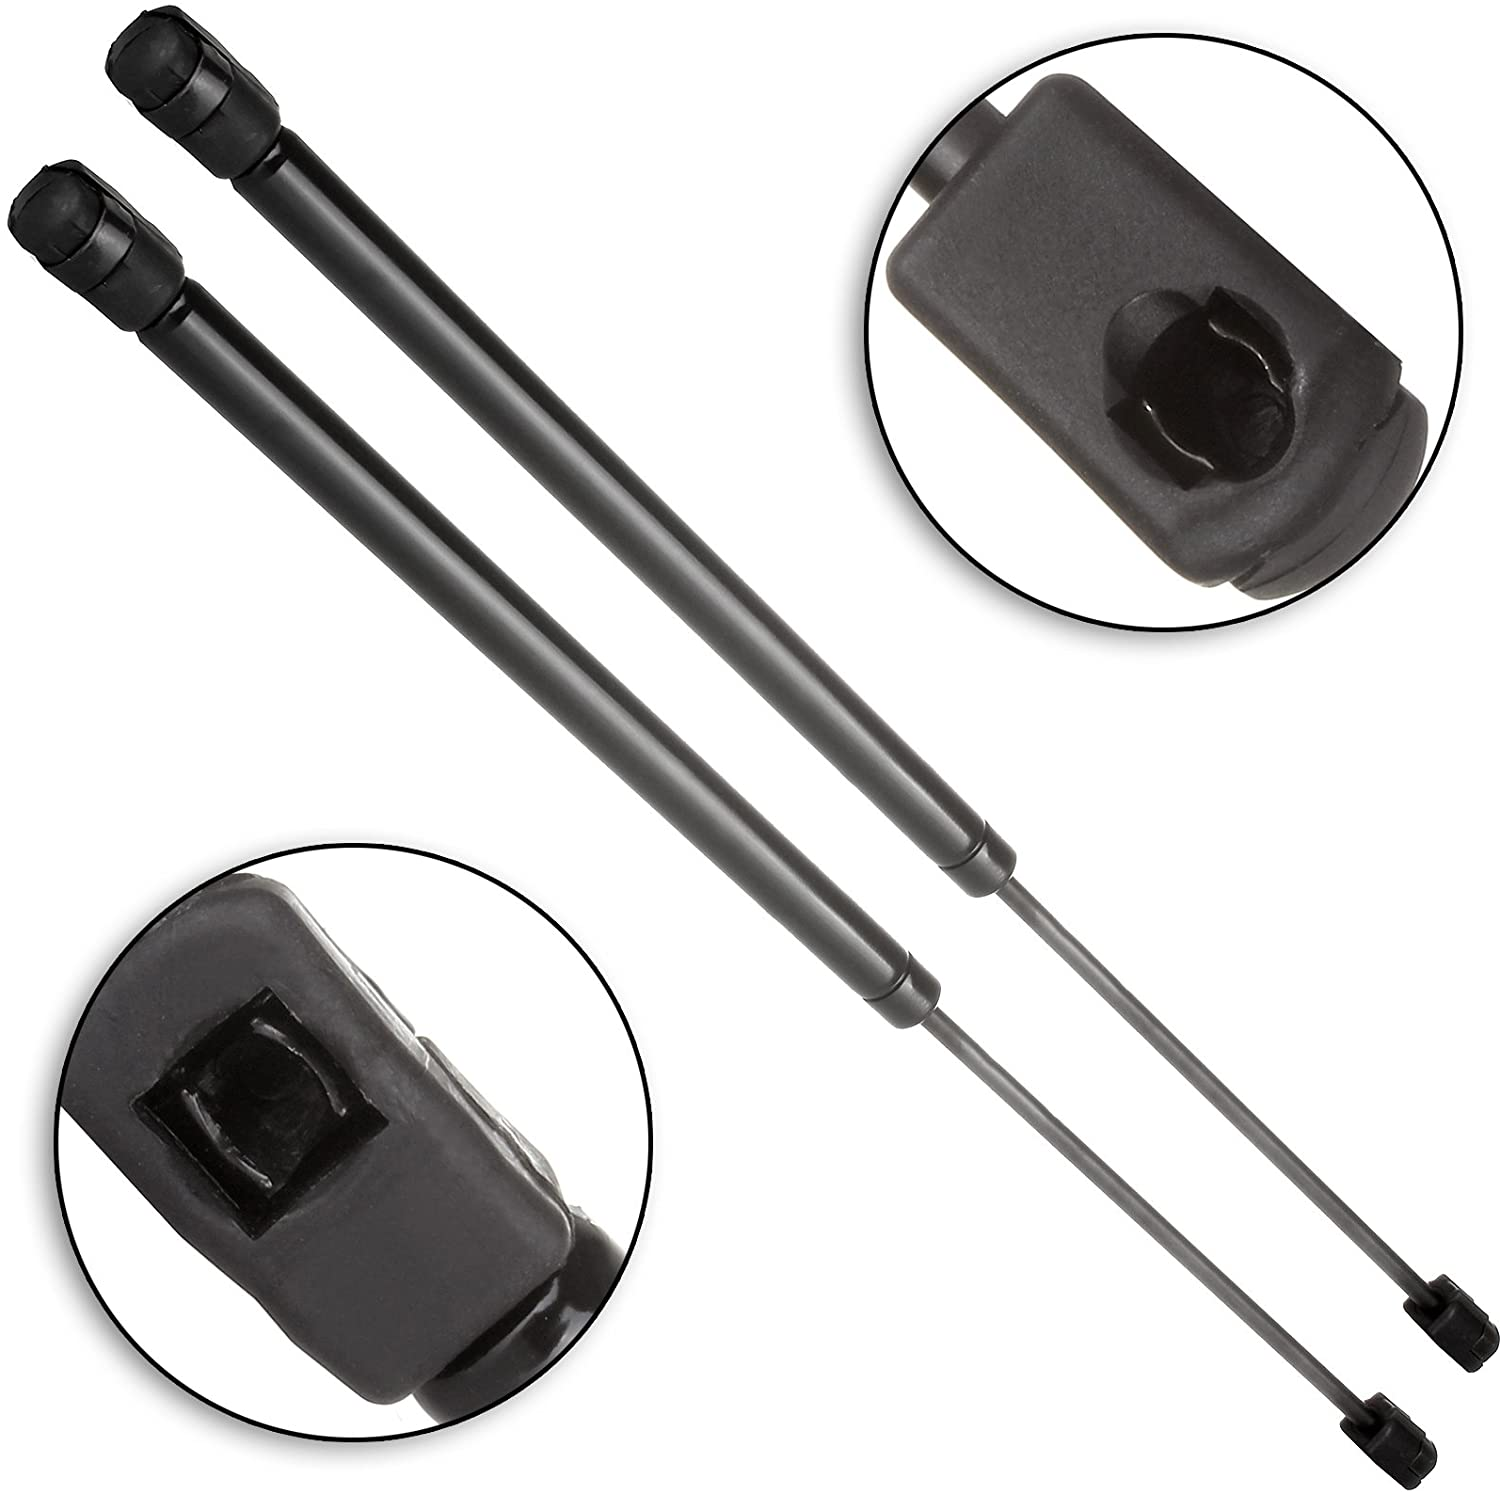 cciyu Qty(2) 4645 Rear Glass Window Lift Supports Struts Replacement fit for 1993-1998 Mercury Villager,1993-1998 Quest